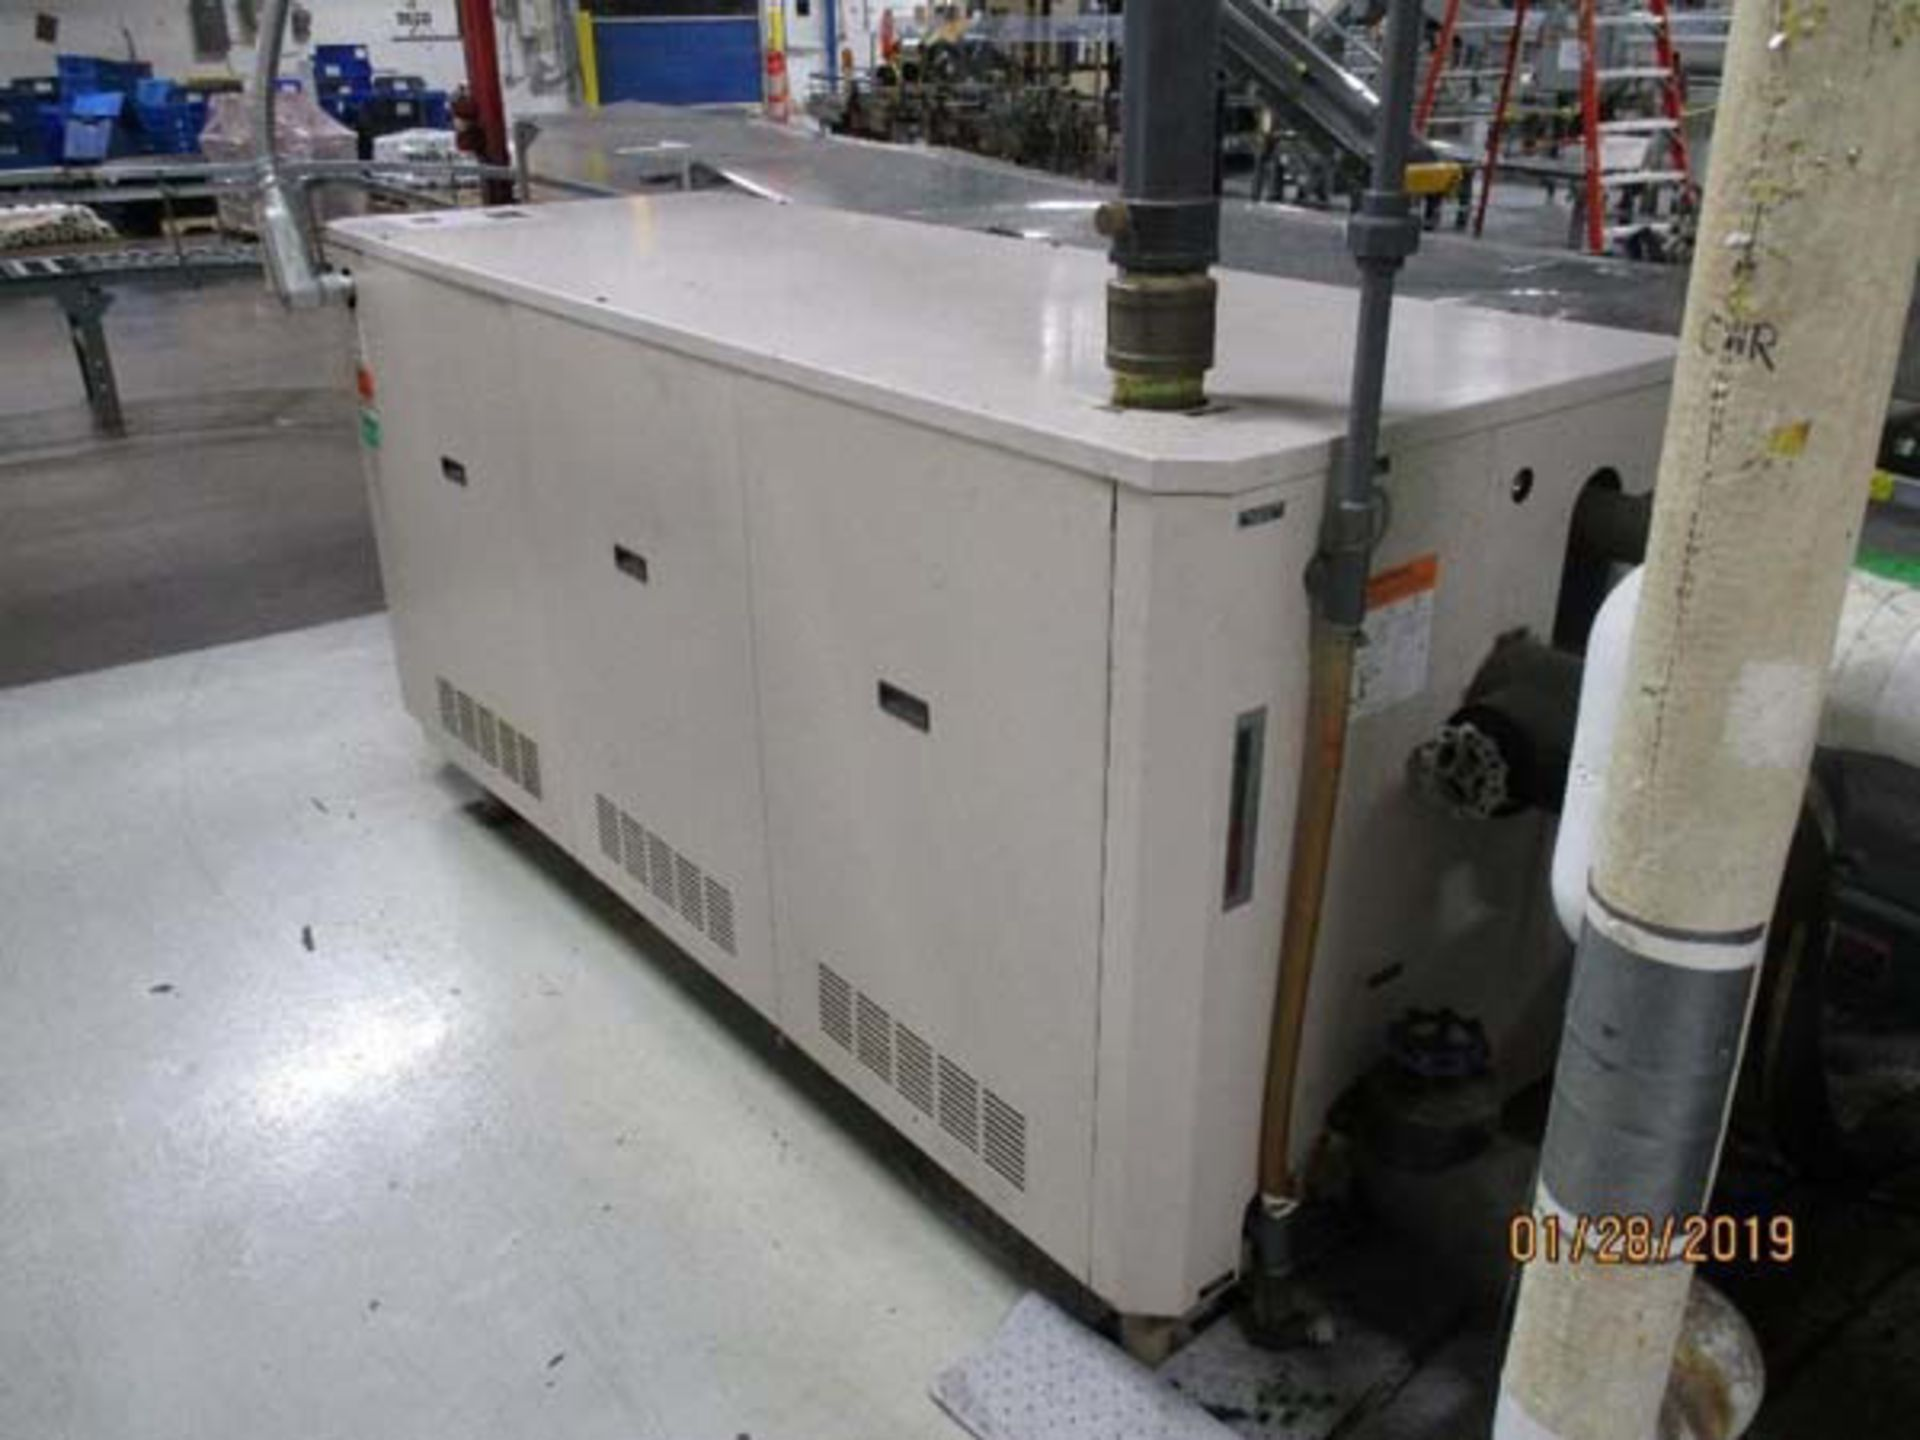 Lot 5 - AEC Refrigerated Water Chiller | 30-Ton, Mdl: PSW-30, S/N: 33G0314 - 8466P